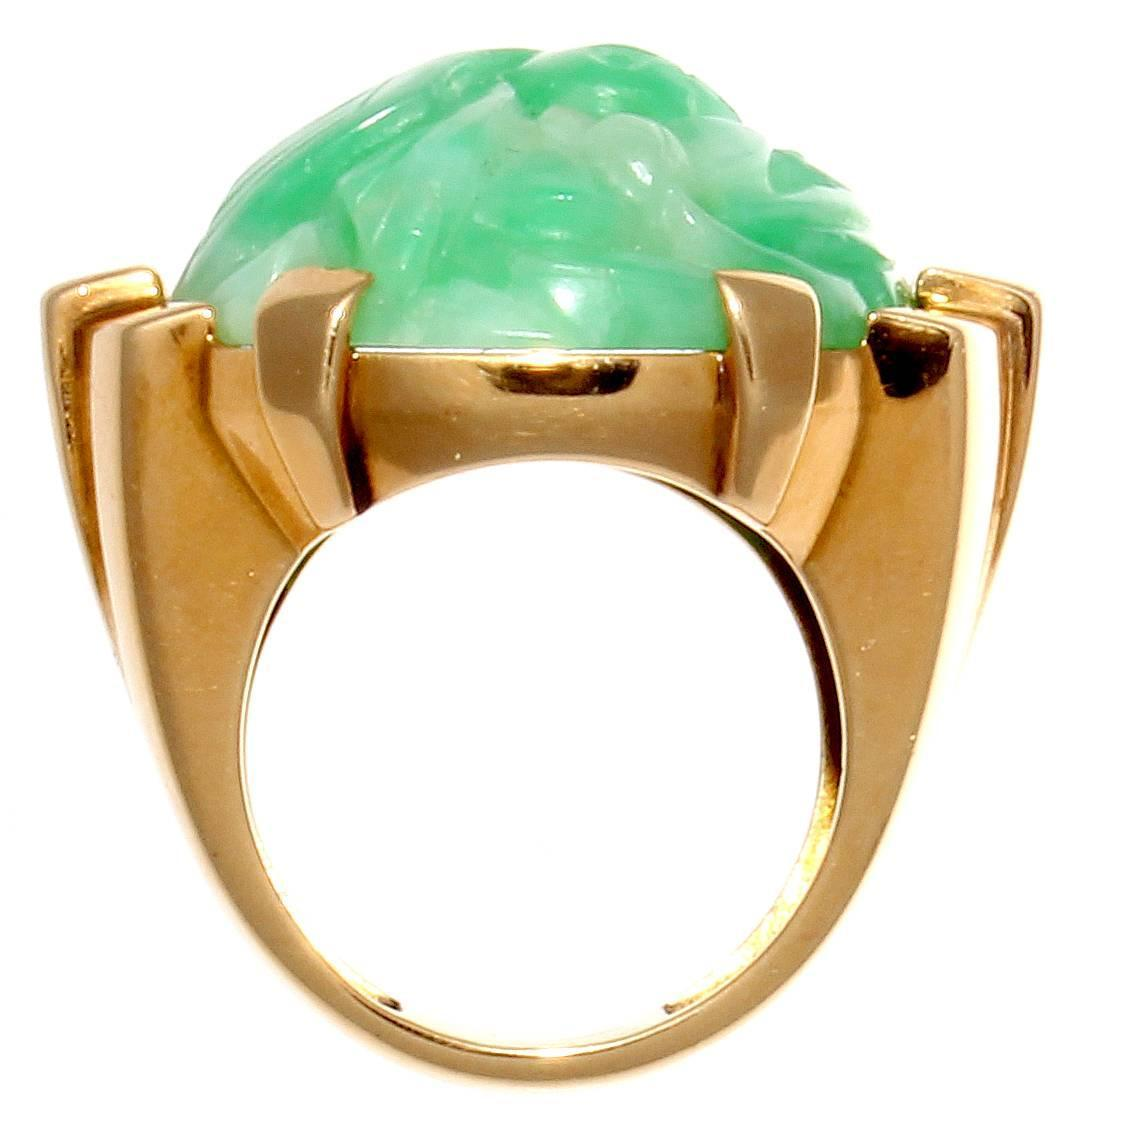 carved jade gold ring for sale at 1stdibs